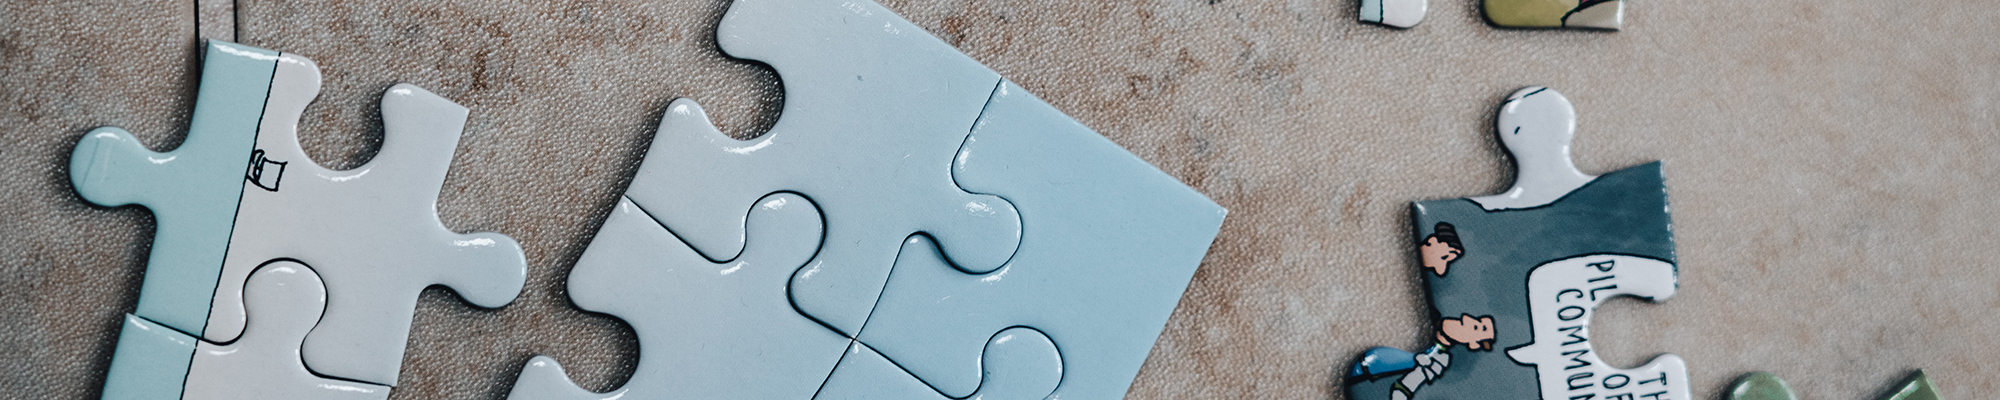 Five questions to ask when recruiting contract and interim staff - Blue puzzles and jigsaw fitting together - VMAGROUP